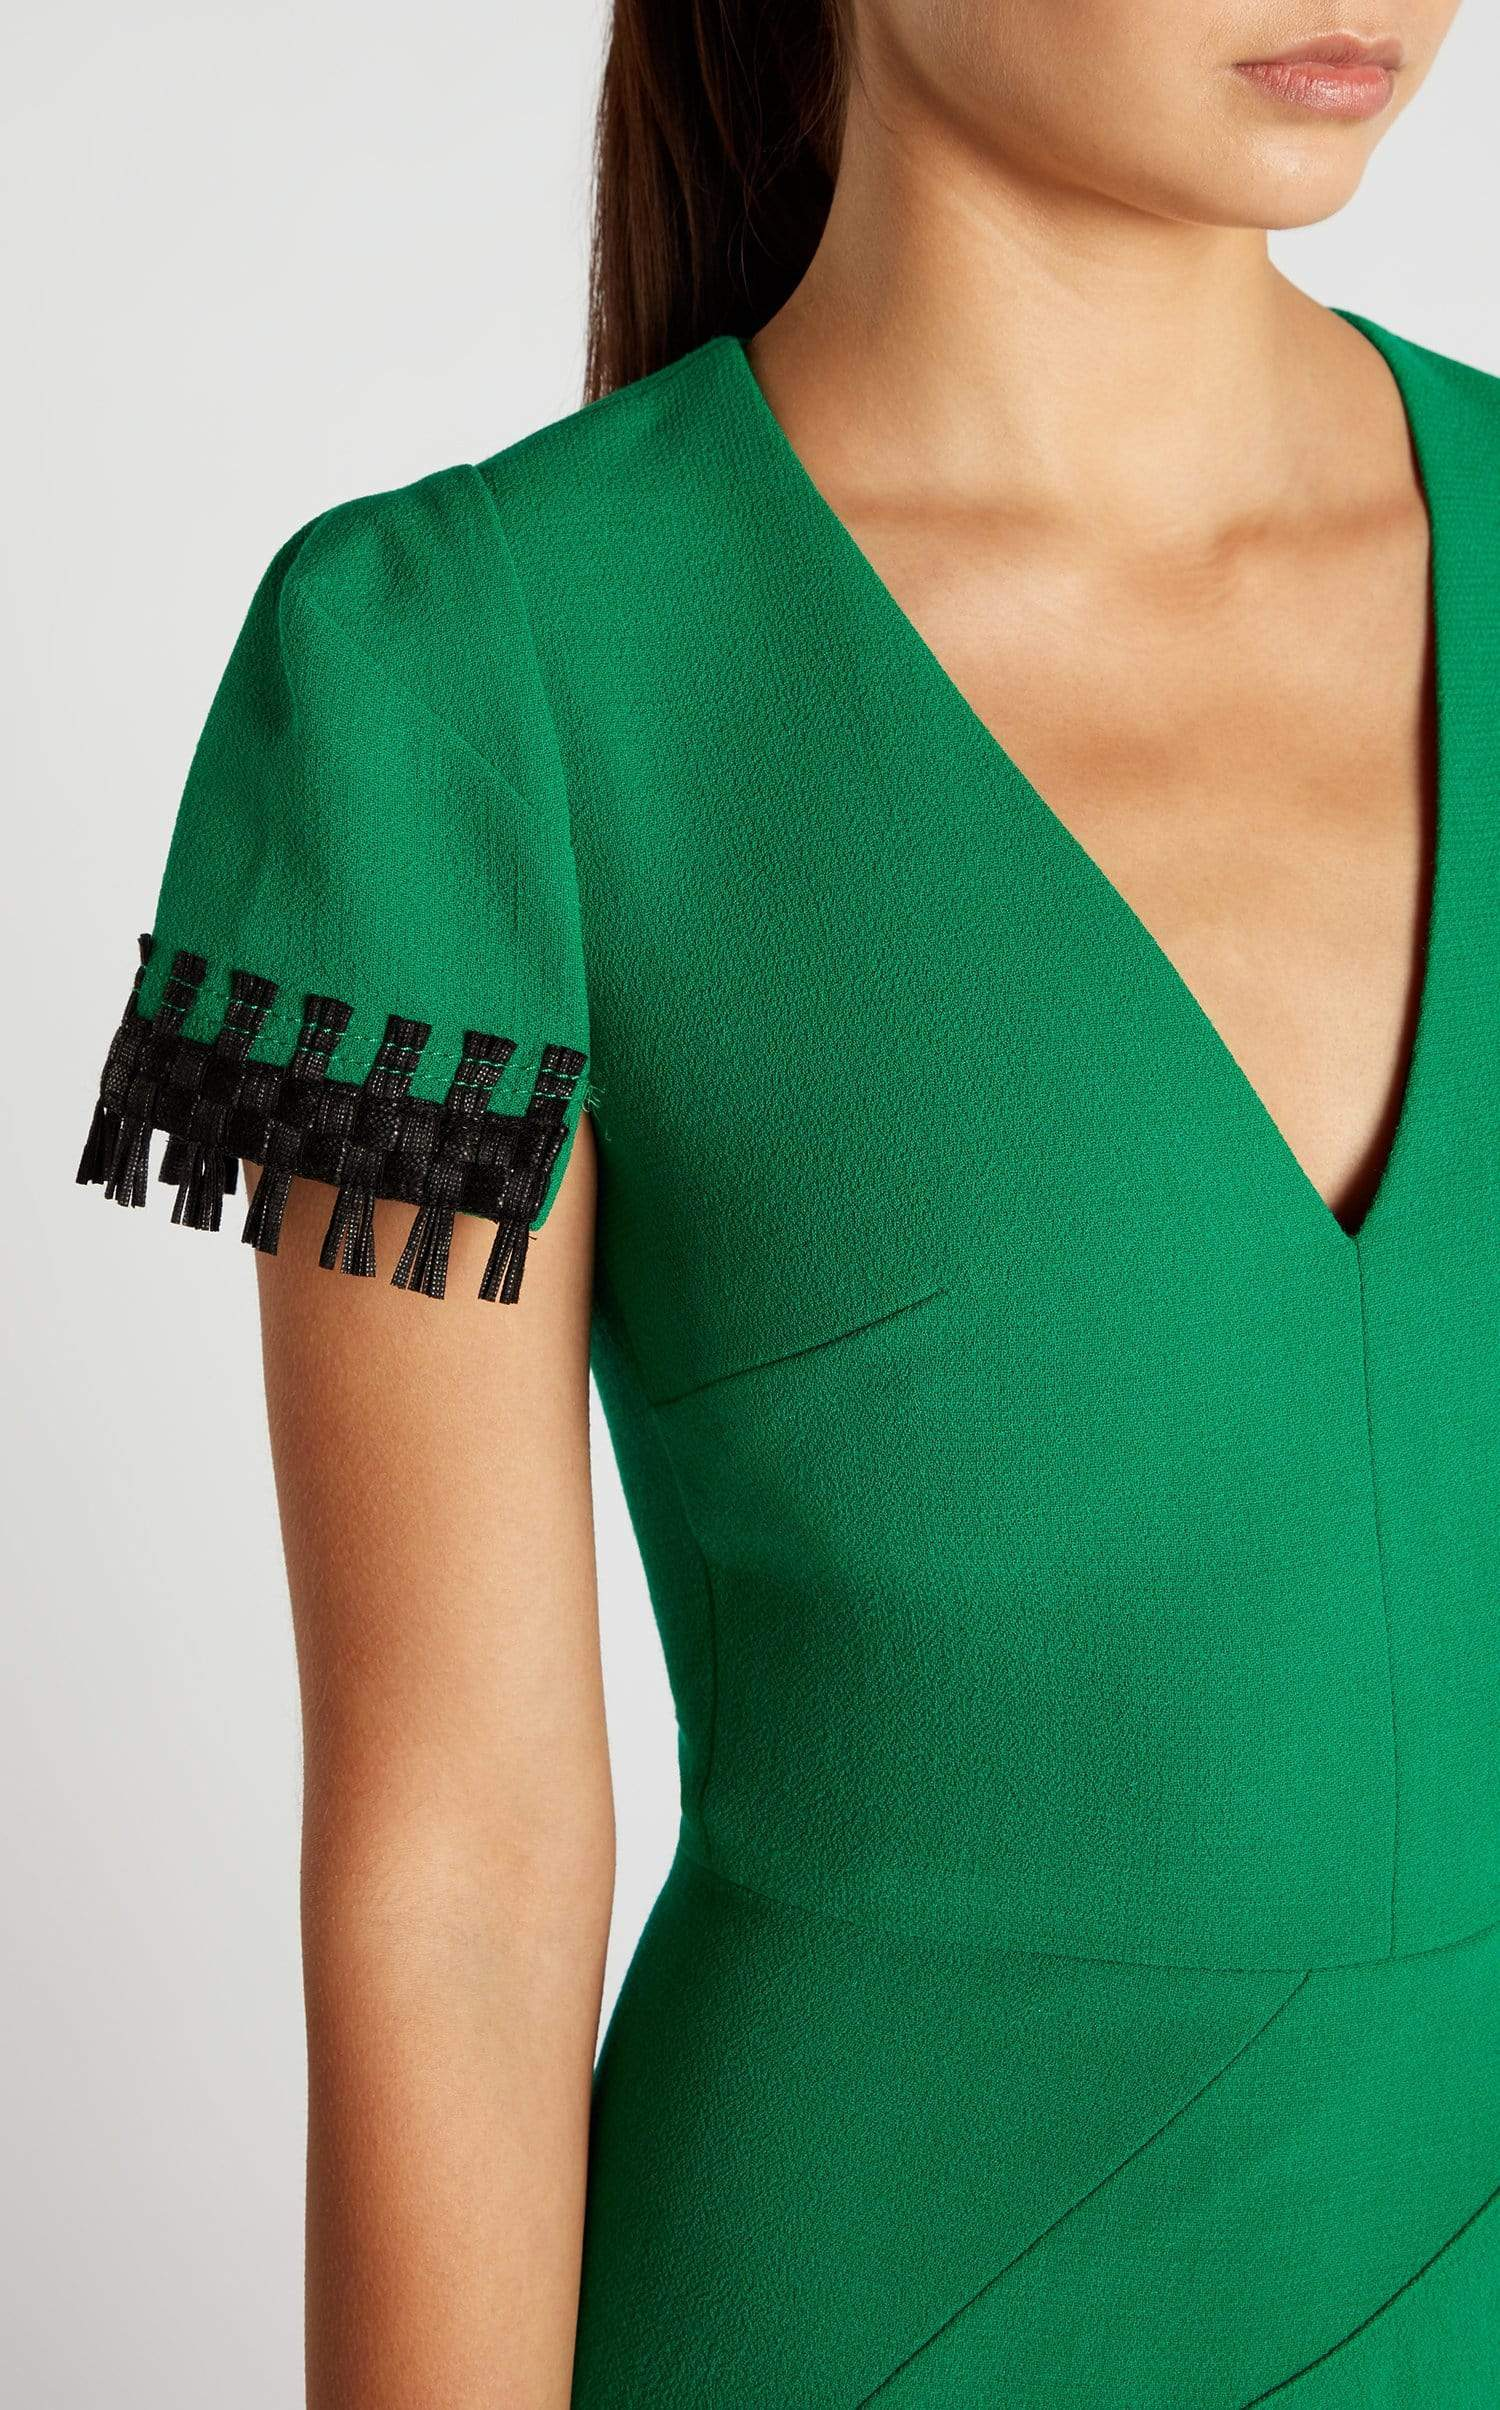 Fortana Dress In Emerald/Black from Roland Mouret